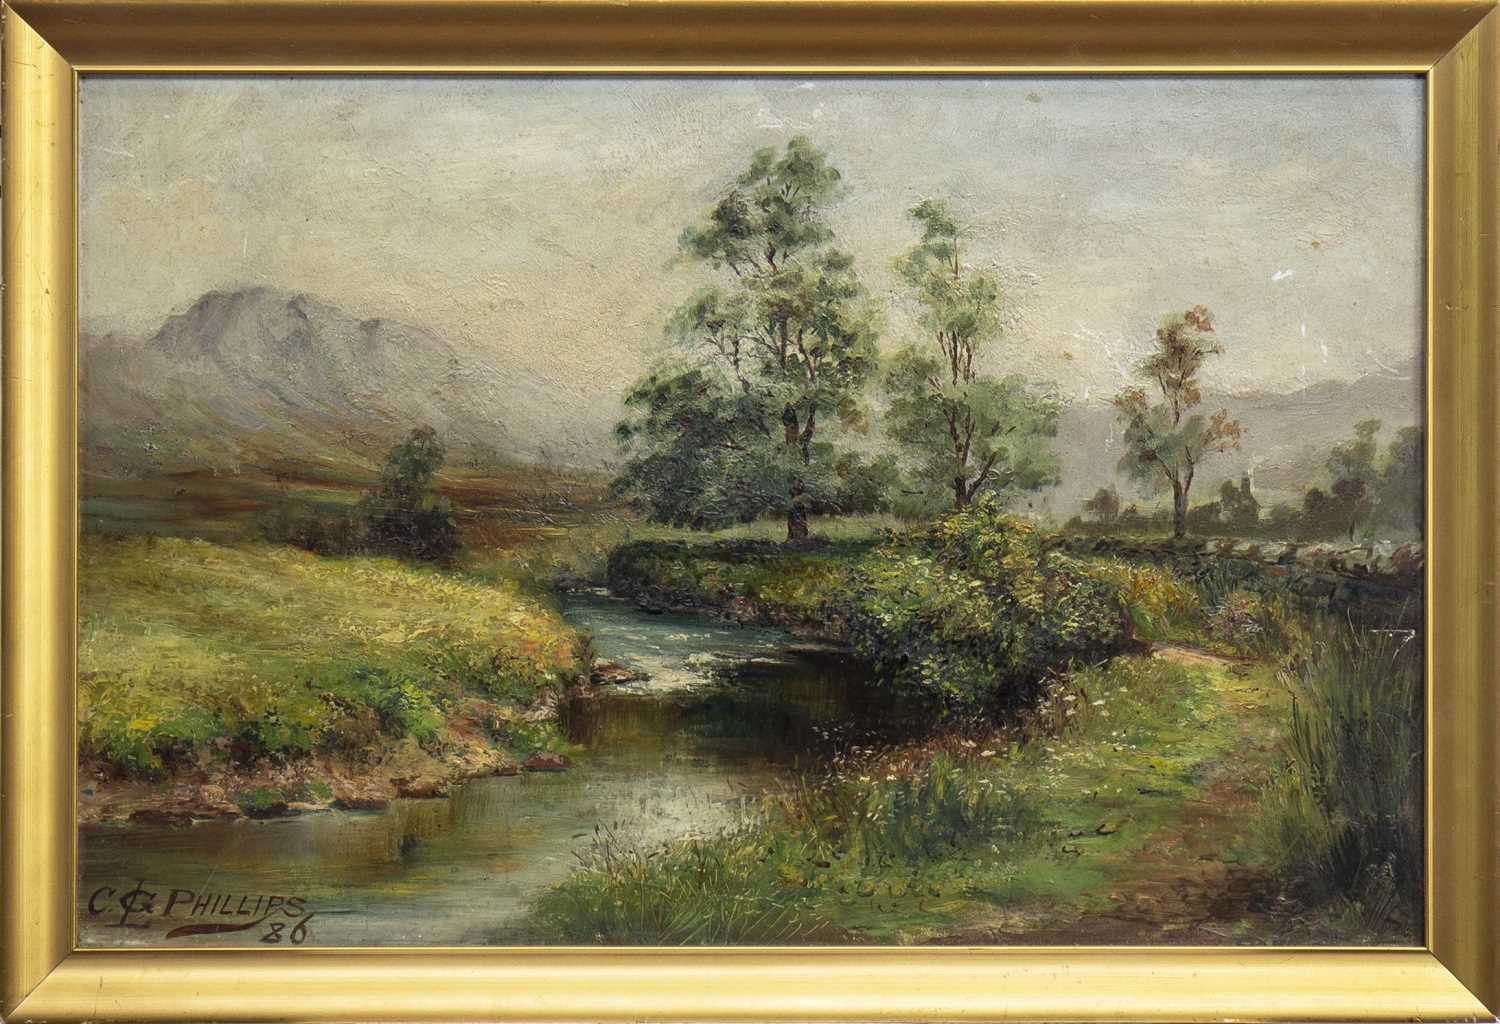 Lot 435-RURAL SCENE, AN OIL BY CHARGES GUSTAV LOUIS PHILLIPS